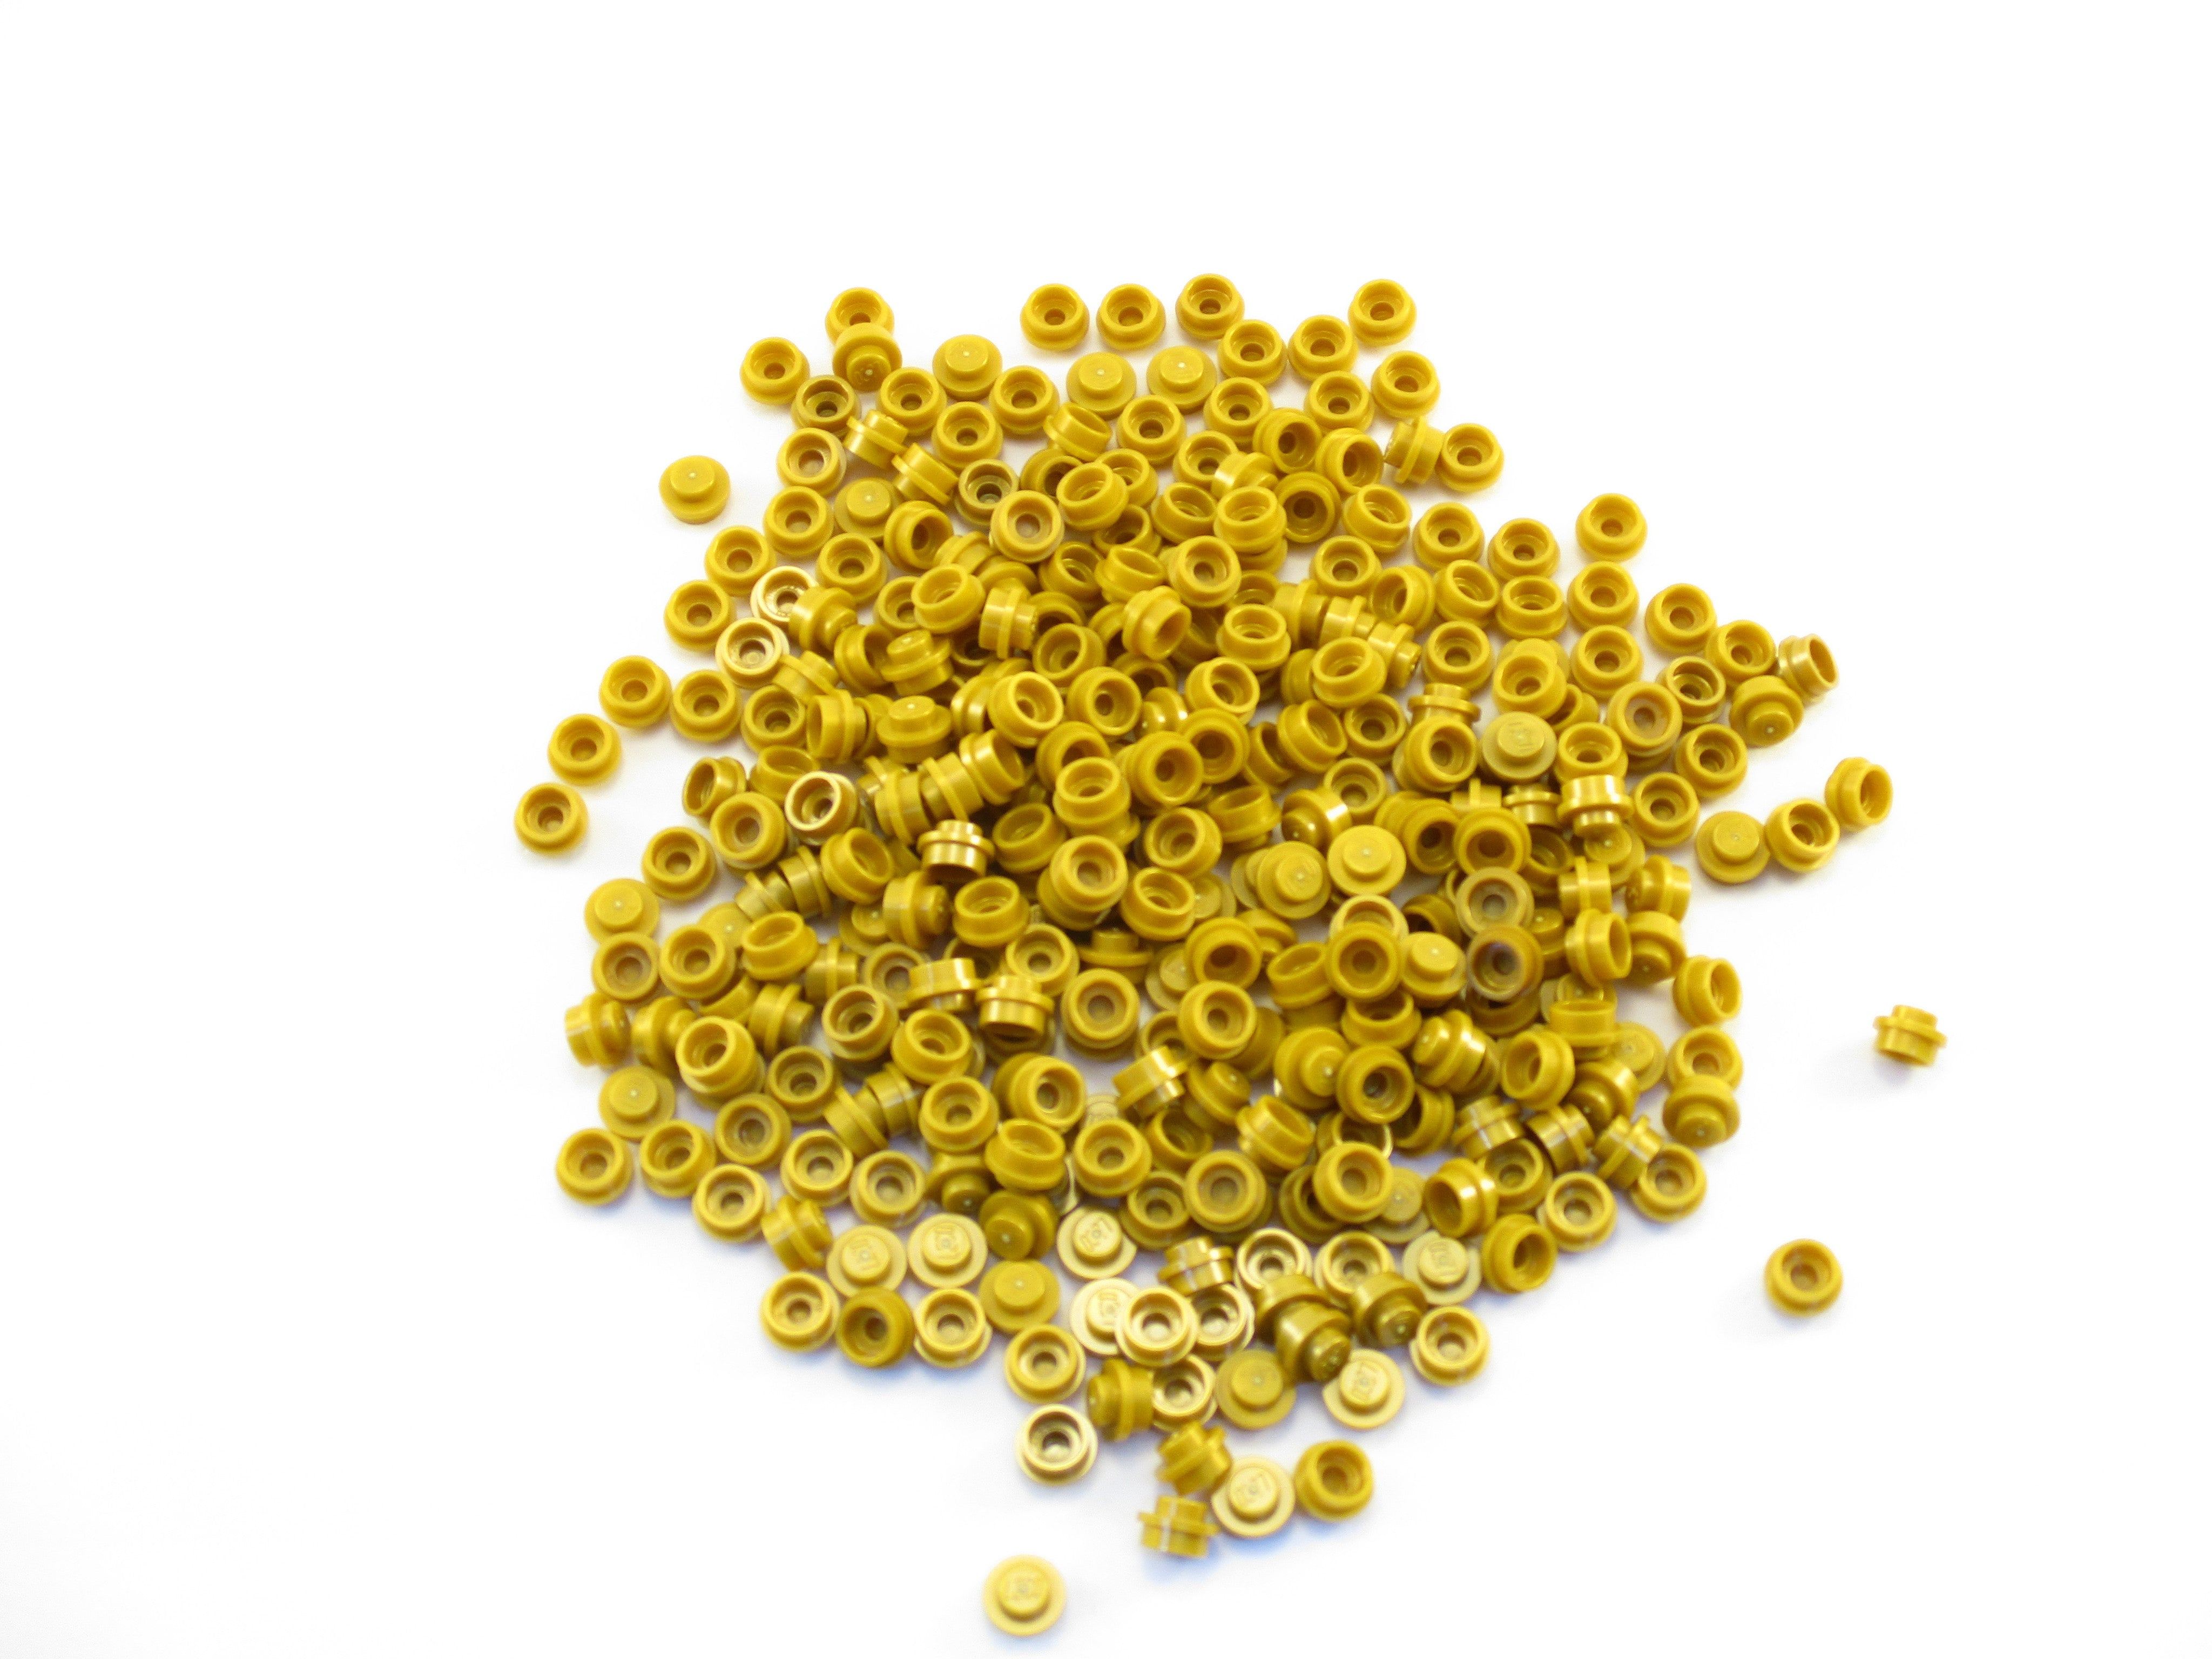 Lego 100 New Pearl Gold Plates Round 1 x 1 Straight Side Pieces